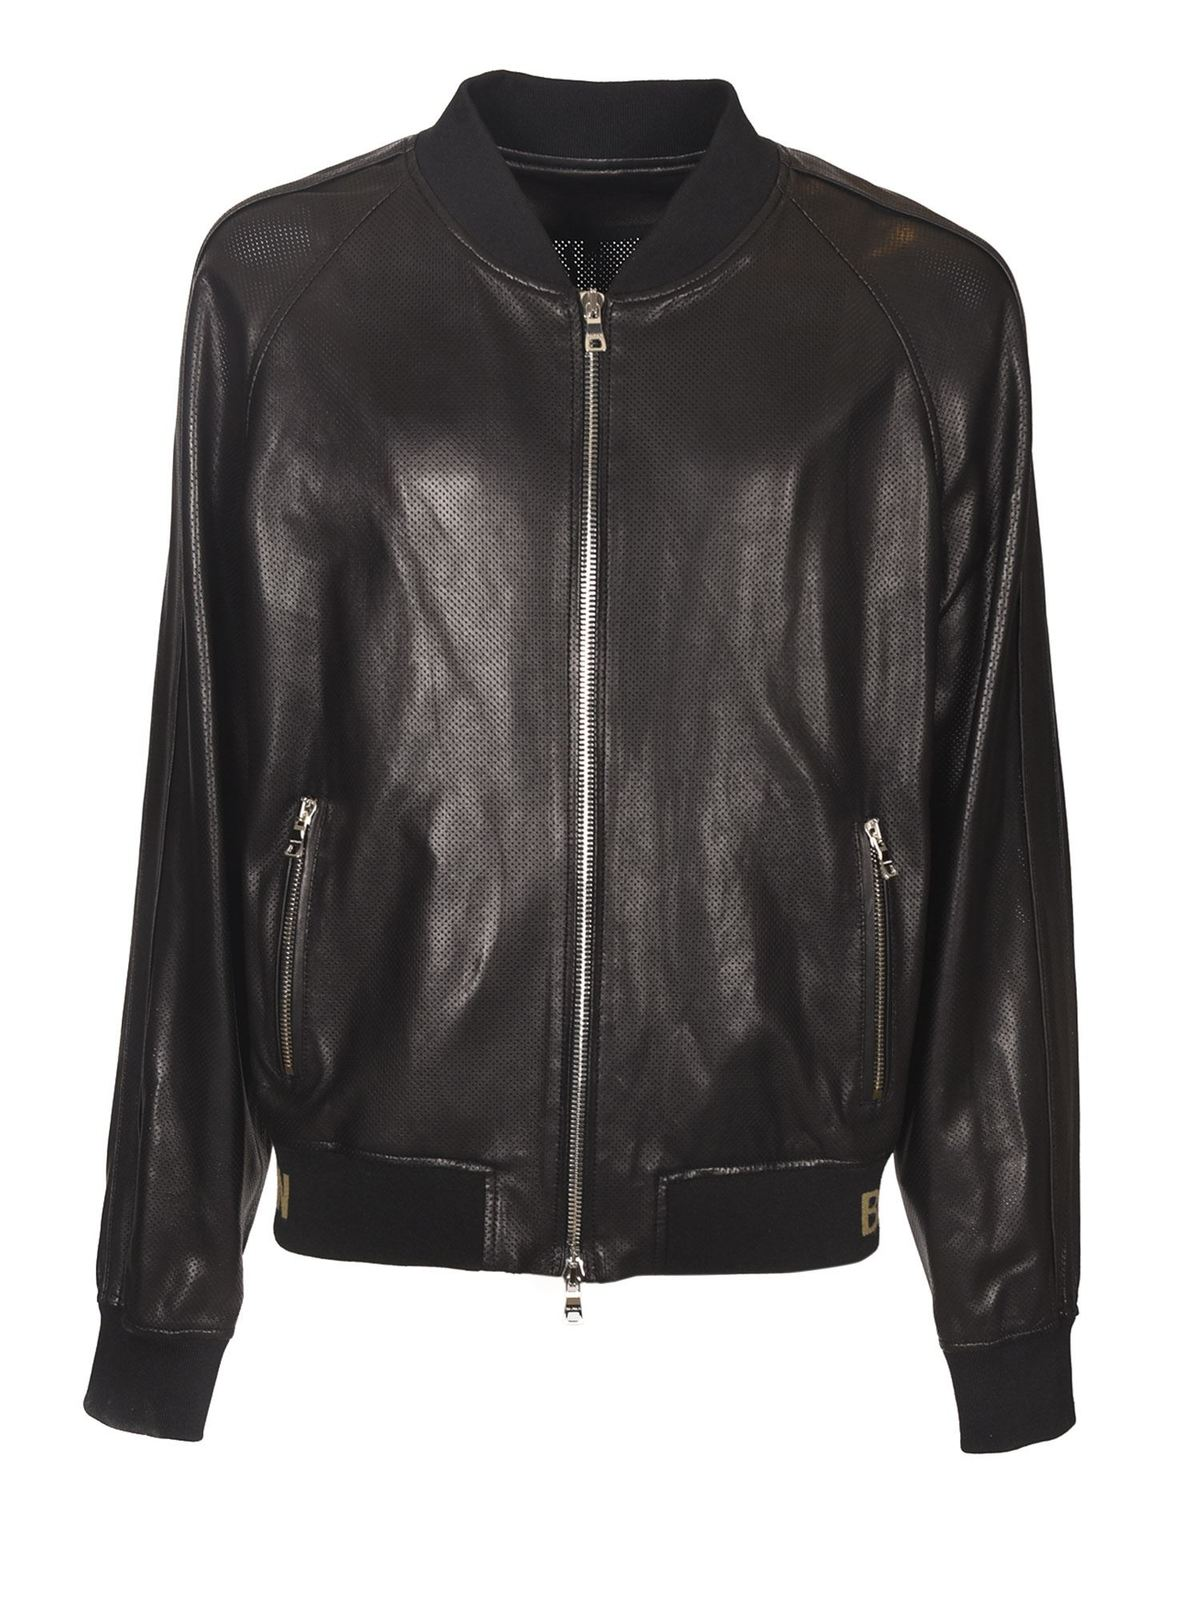 Balmain PERFORATED LEATHER JACKET IN BLACK